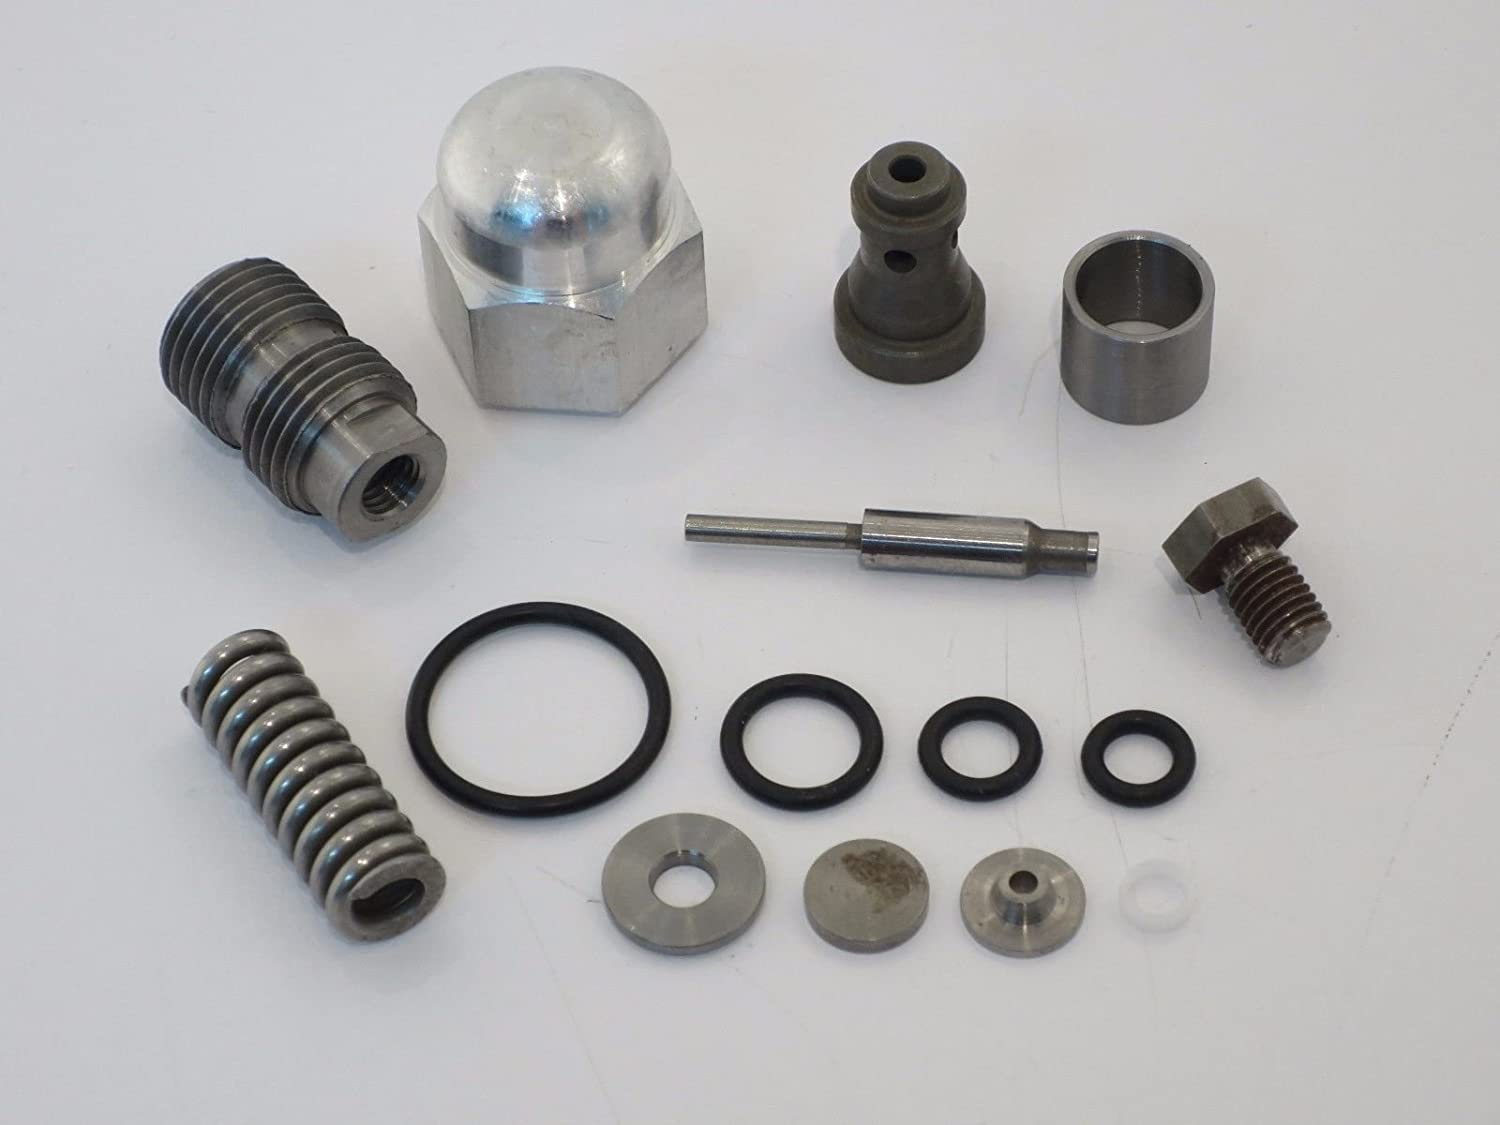 The ROP Shop New Crossover Relief Valve & Seal KIT fits Meyer Snow Plow E-47 E-57 E-60 Pumps Buyers